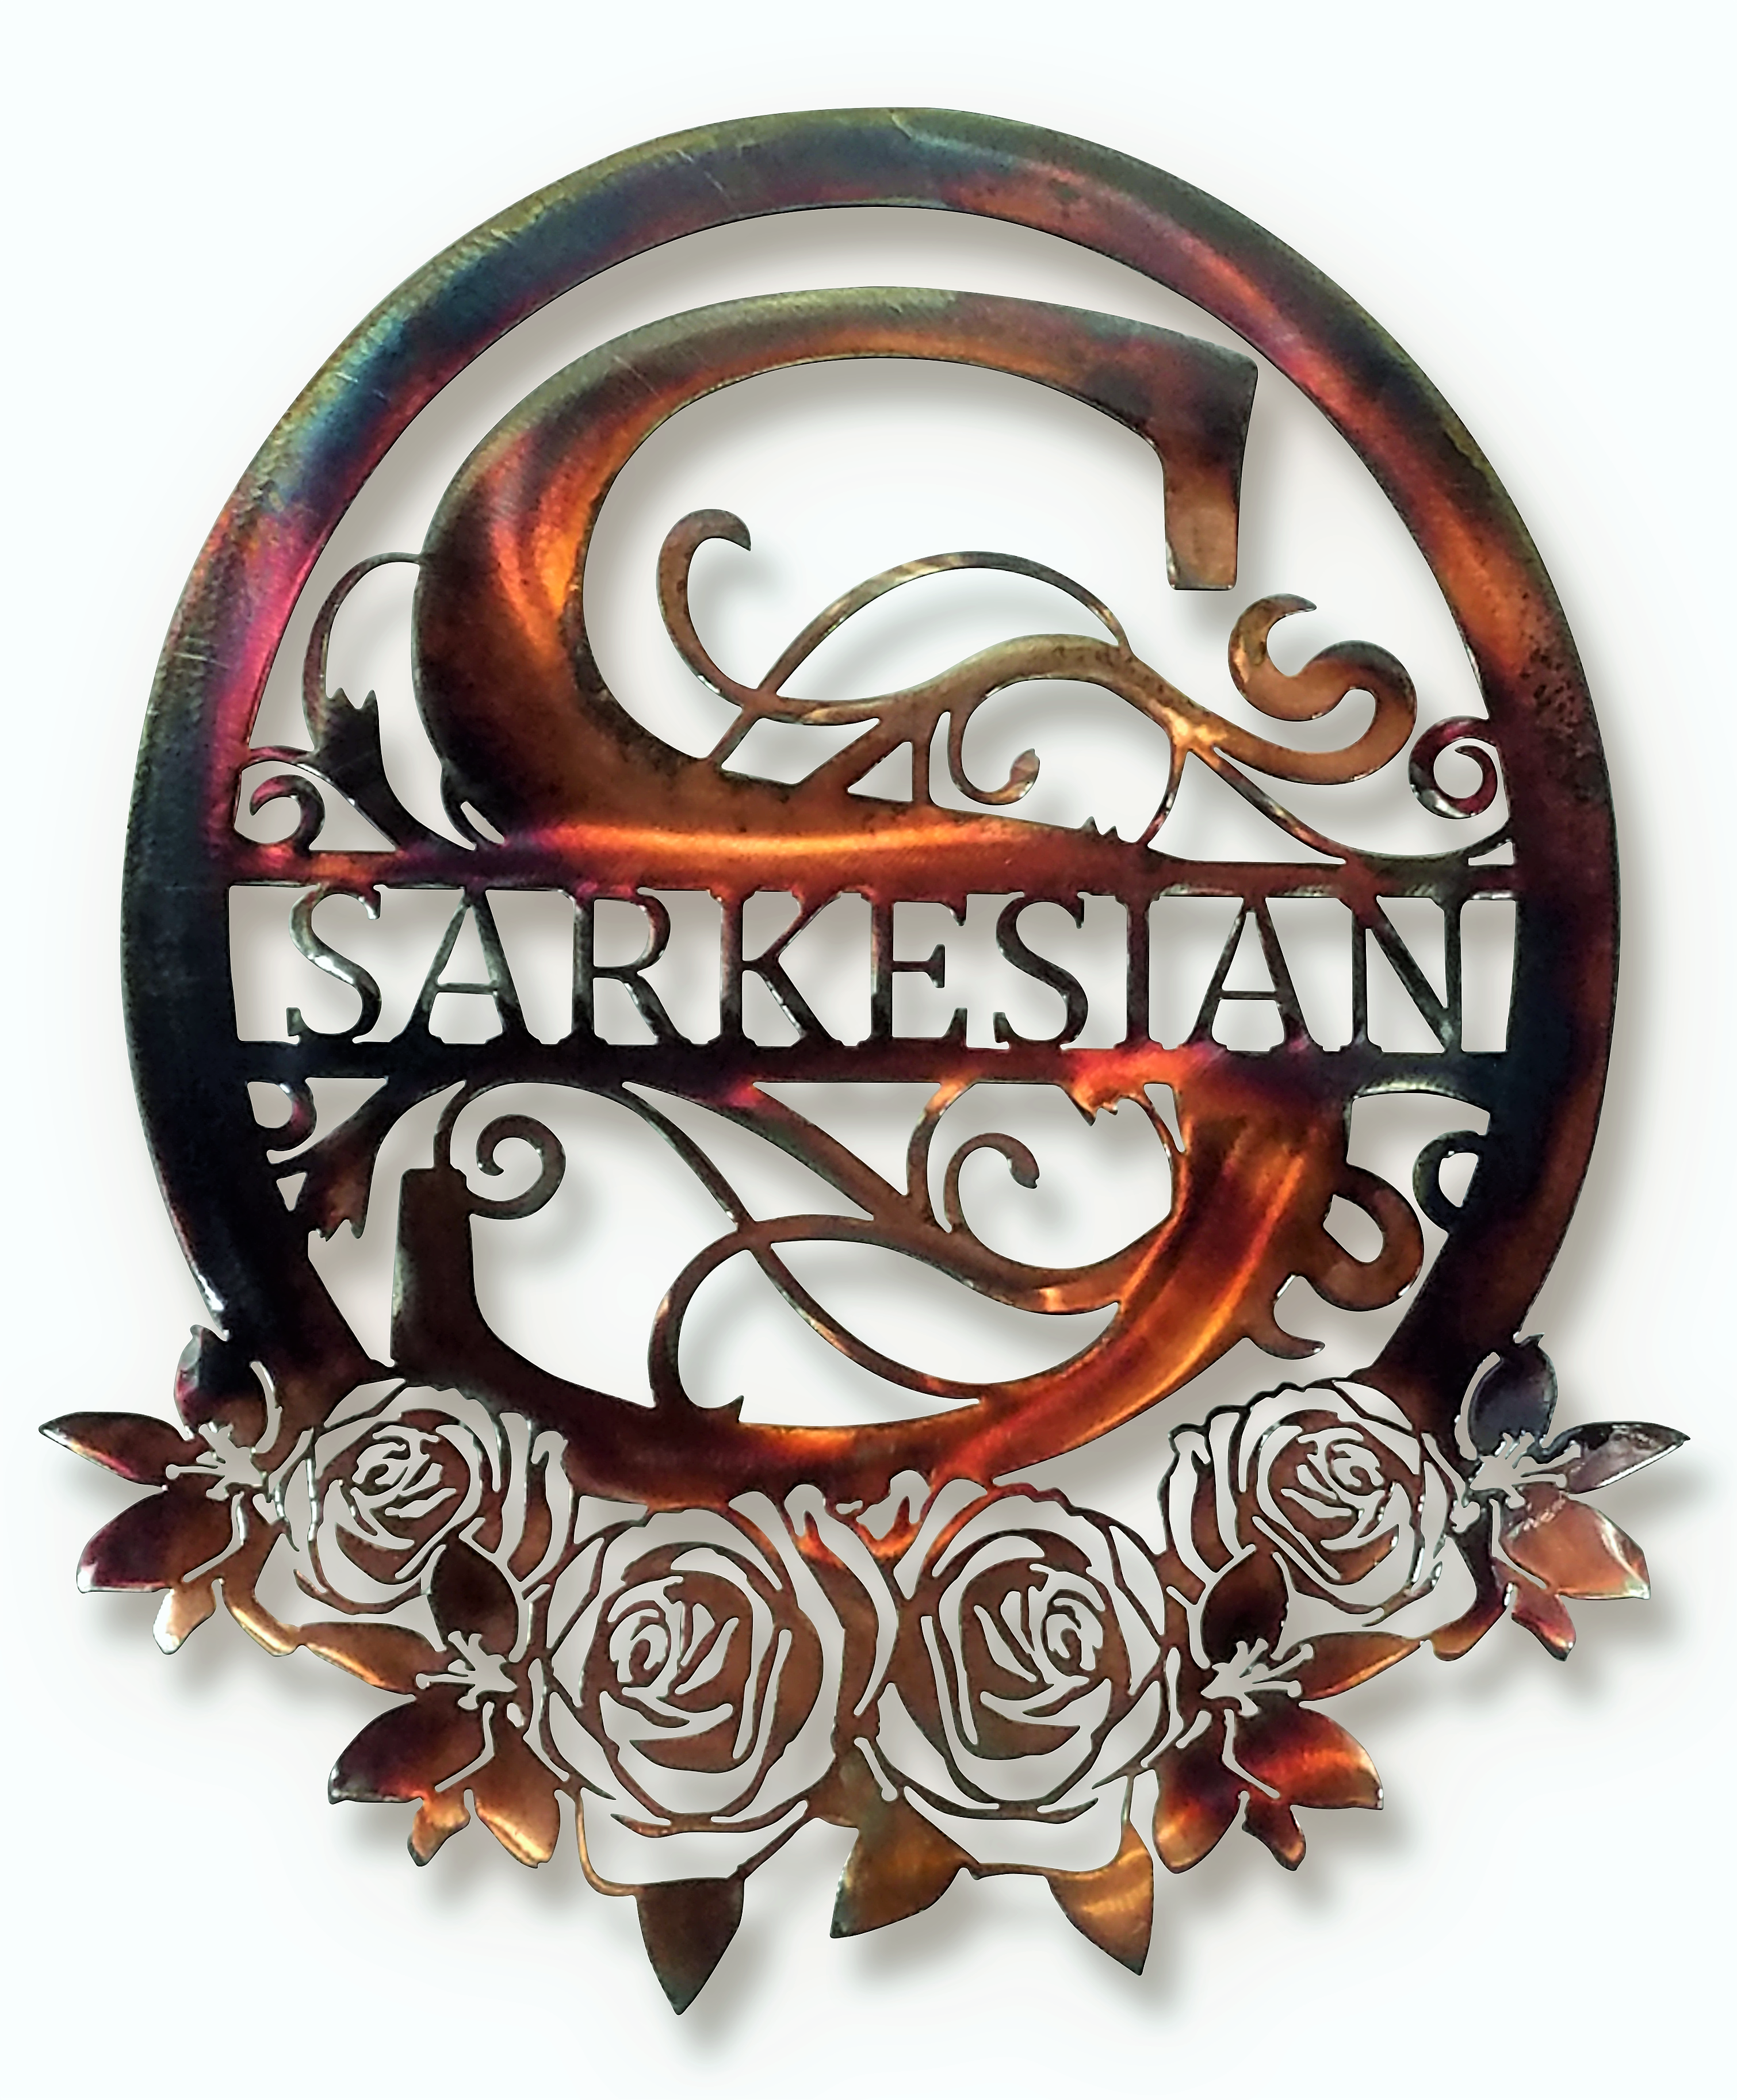 Monogram Sarkesian (1)